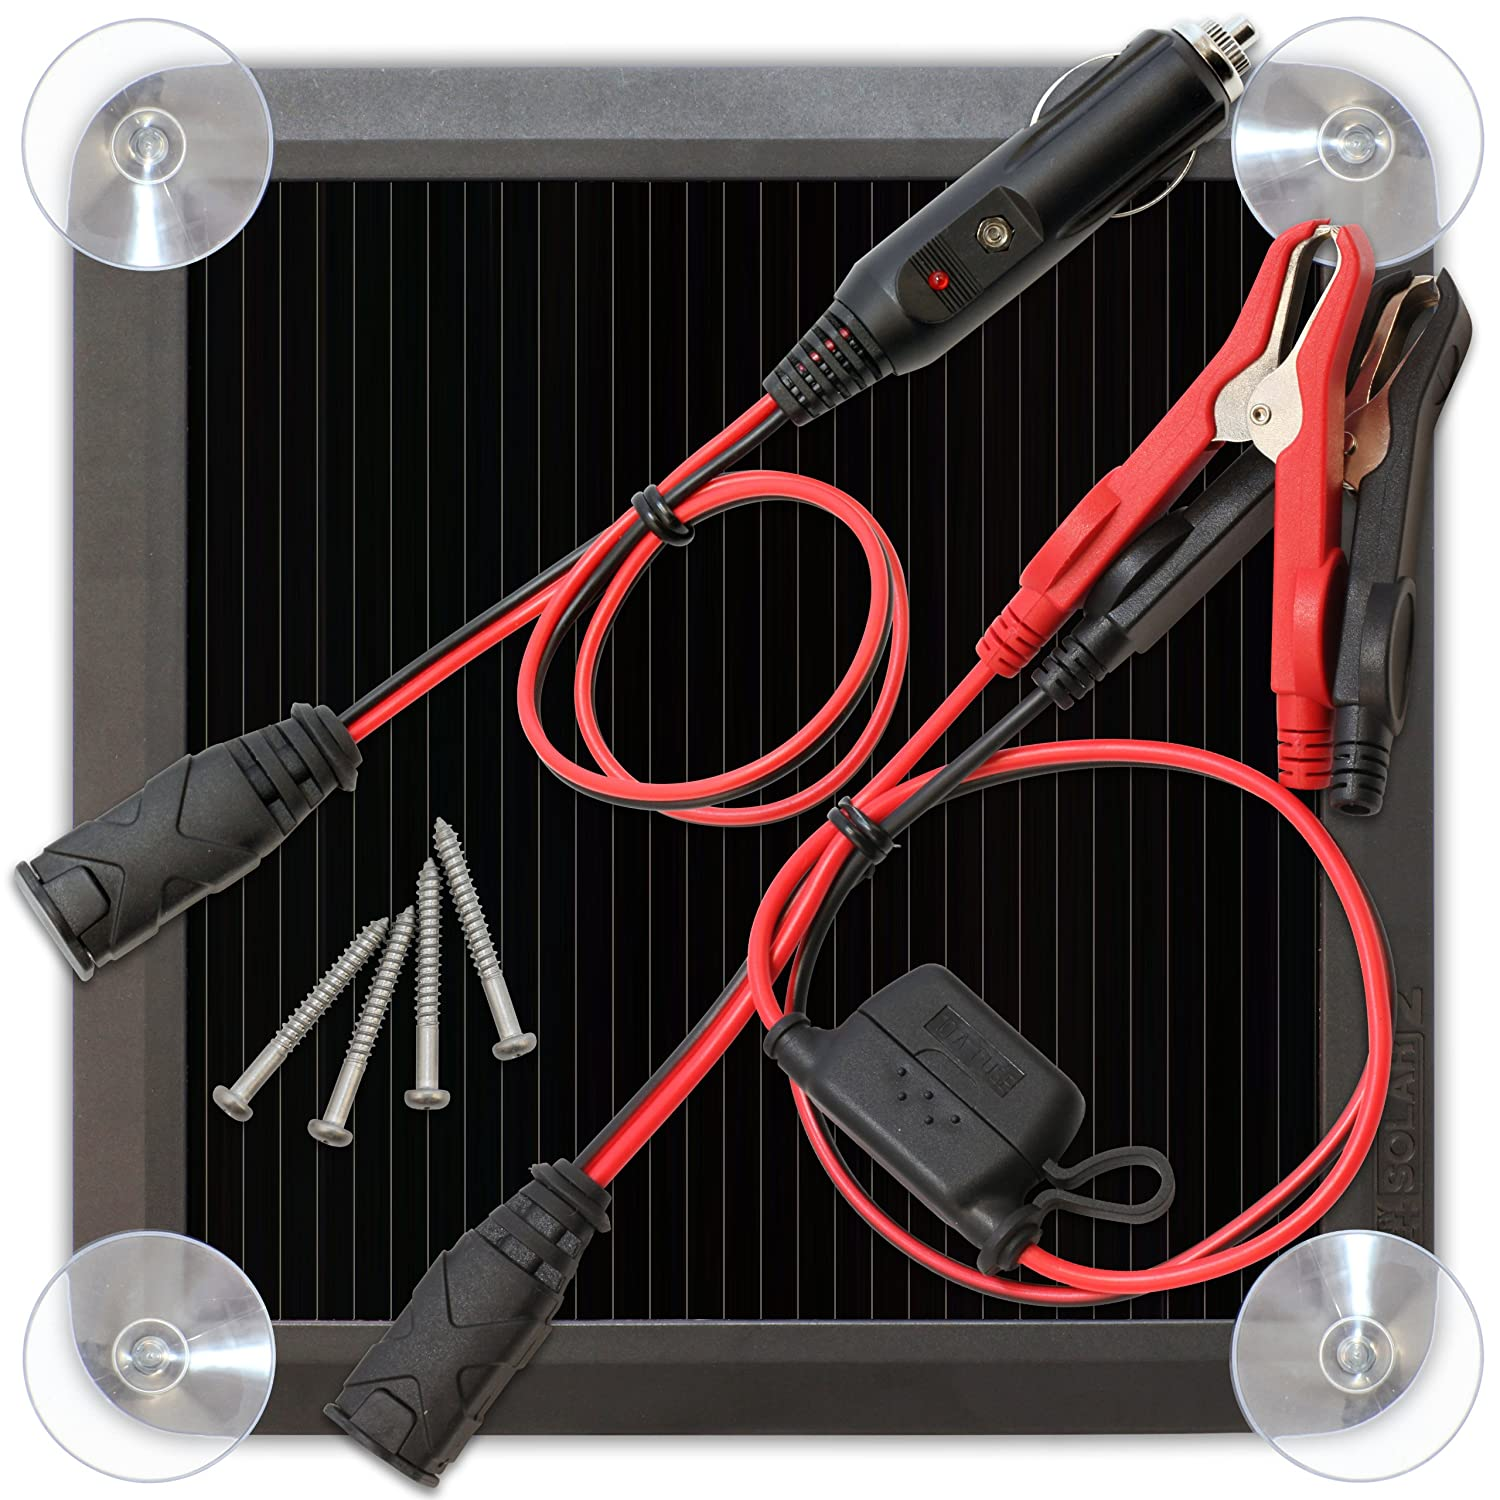 Noco Battery Life Blsolar2 25 Watt Solar Volt Meter Wiring As Well Panel Diagram Rv Charger And Maintainer Automotive